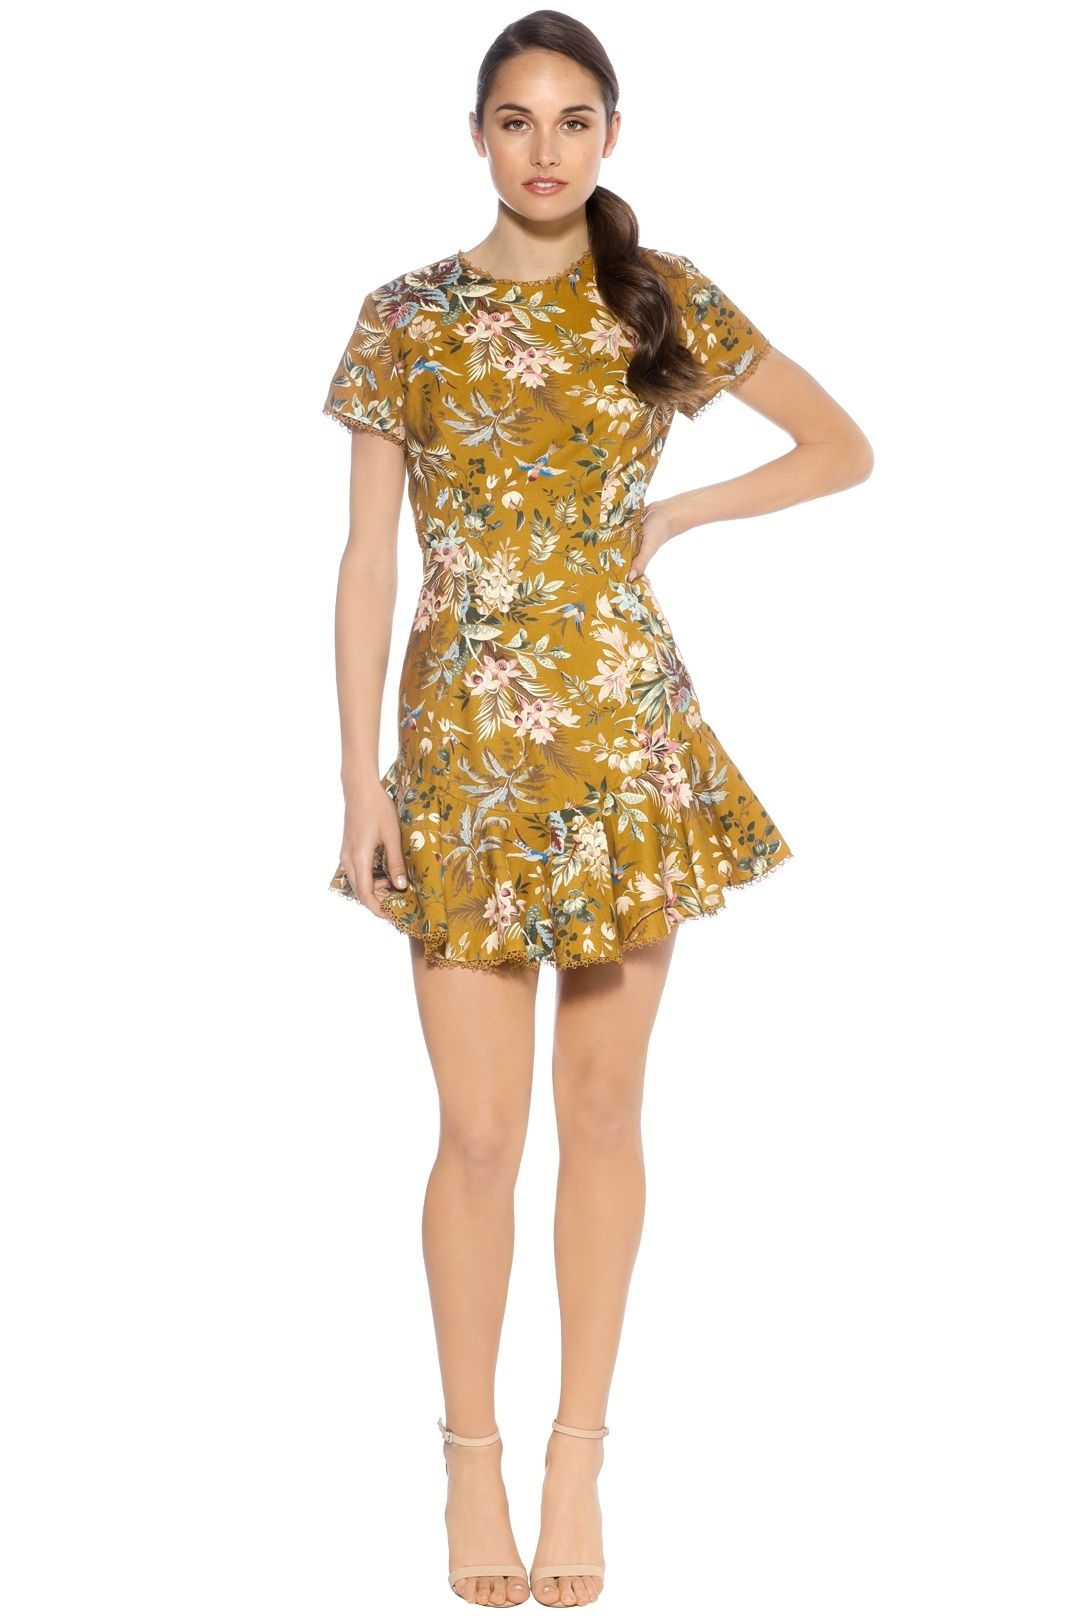 Zimmermann - Tropicale Lattice Dress - Mustard - Front